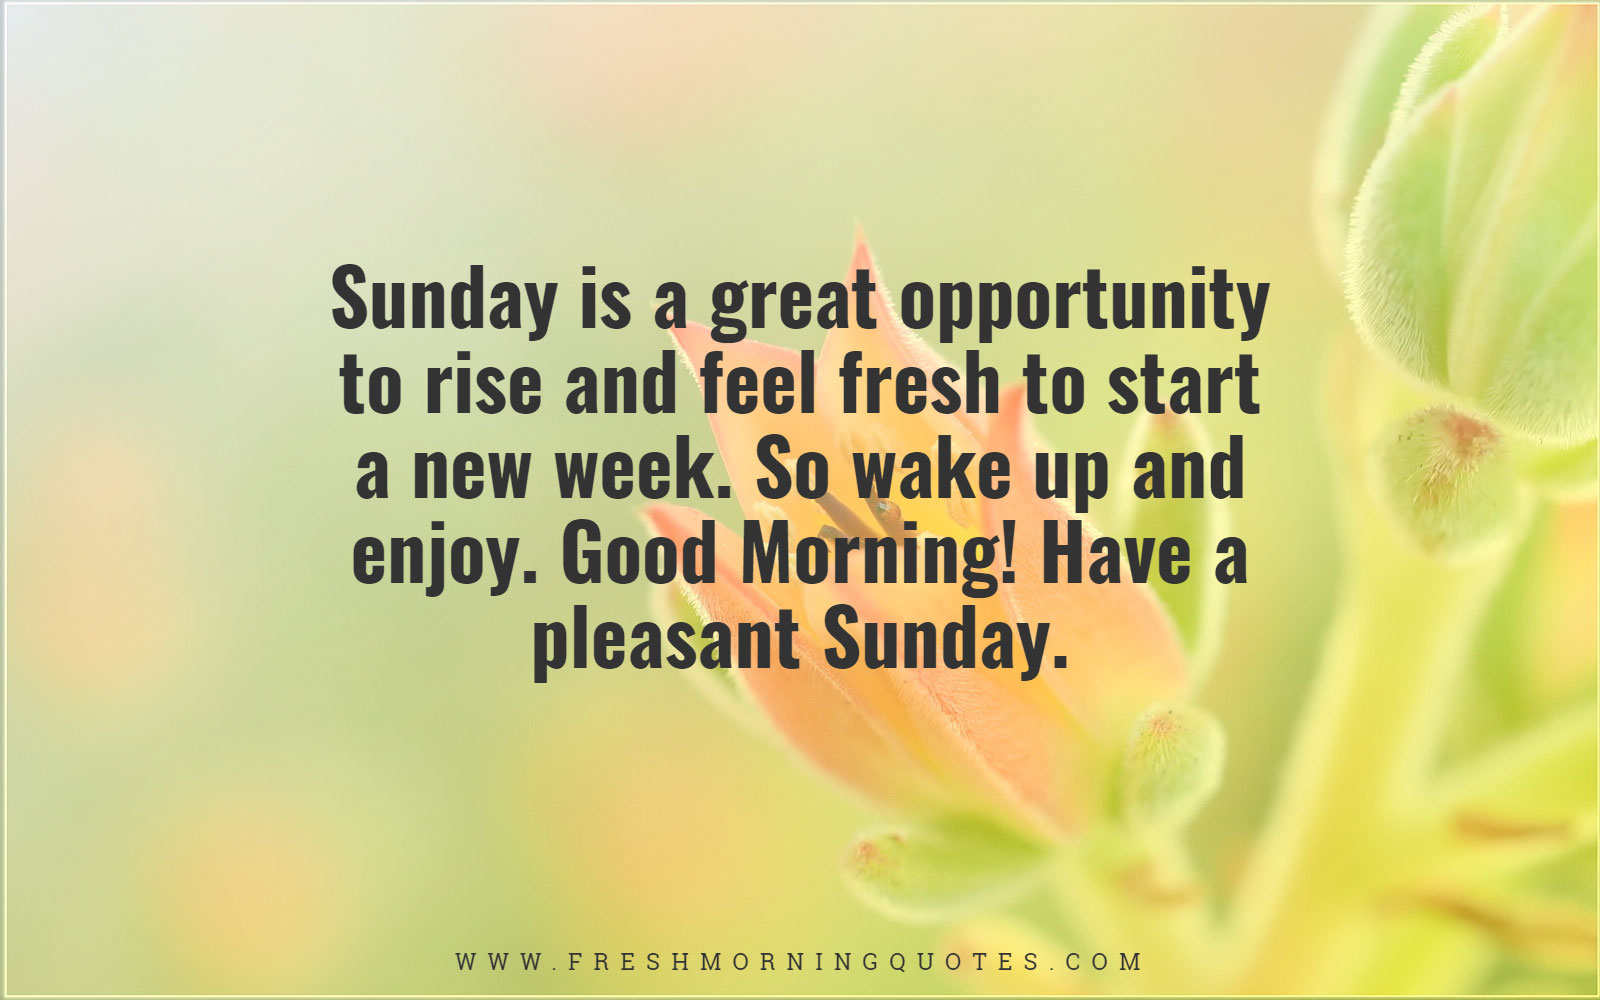 Sunday is a great opportunity to rise and feel fresh